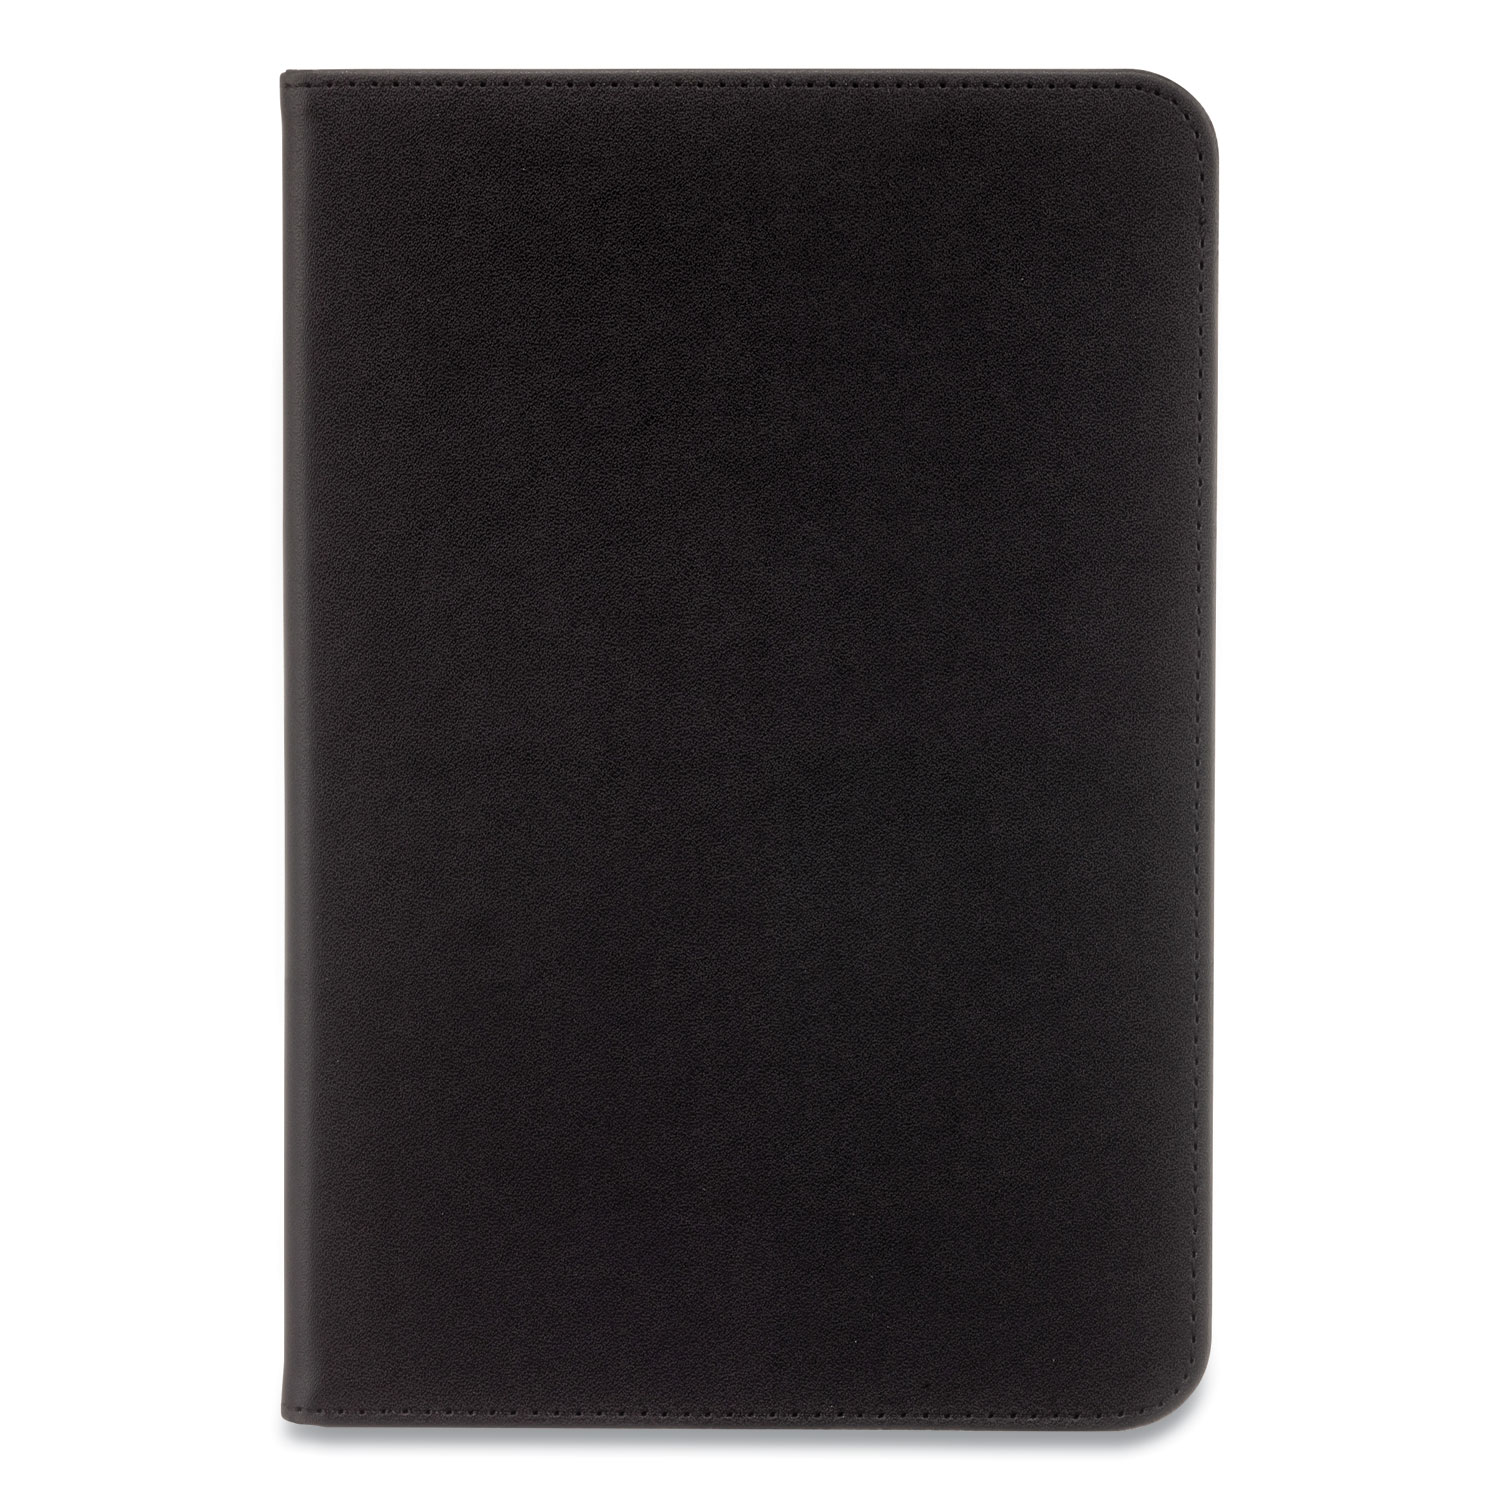 M-Edge Universal Folio Case for 7 to 8 Tablets, Black